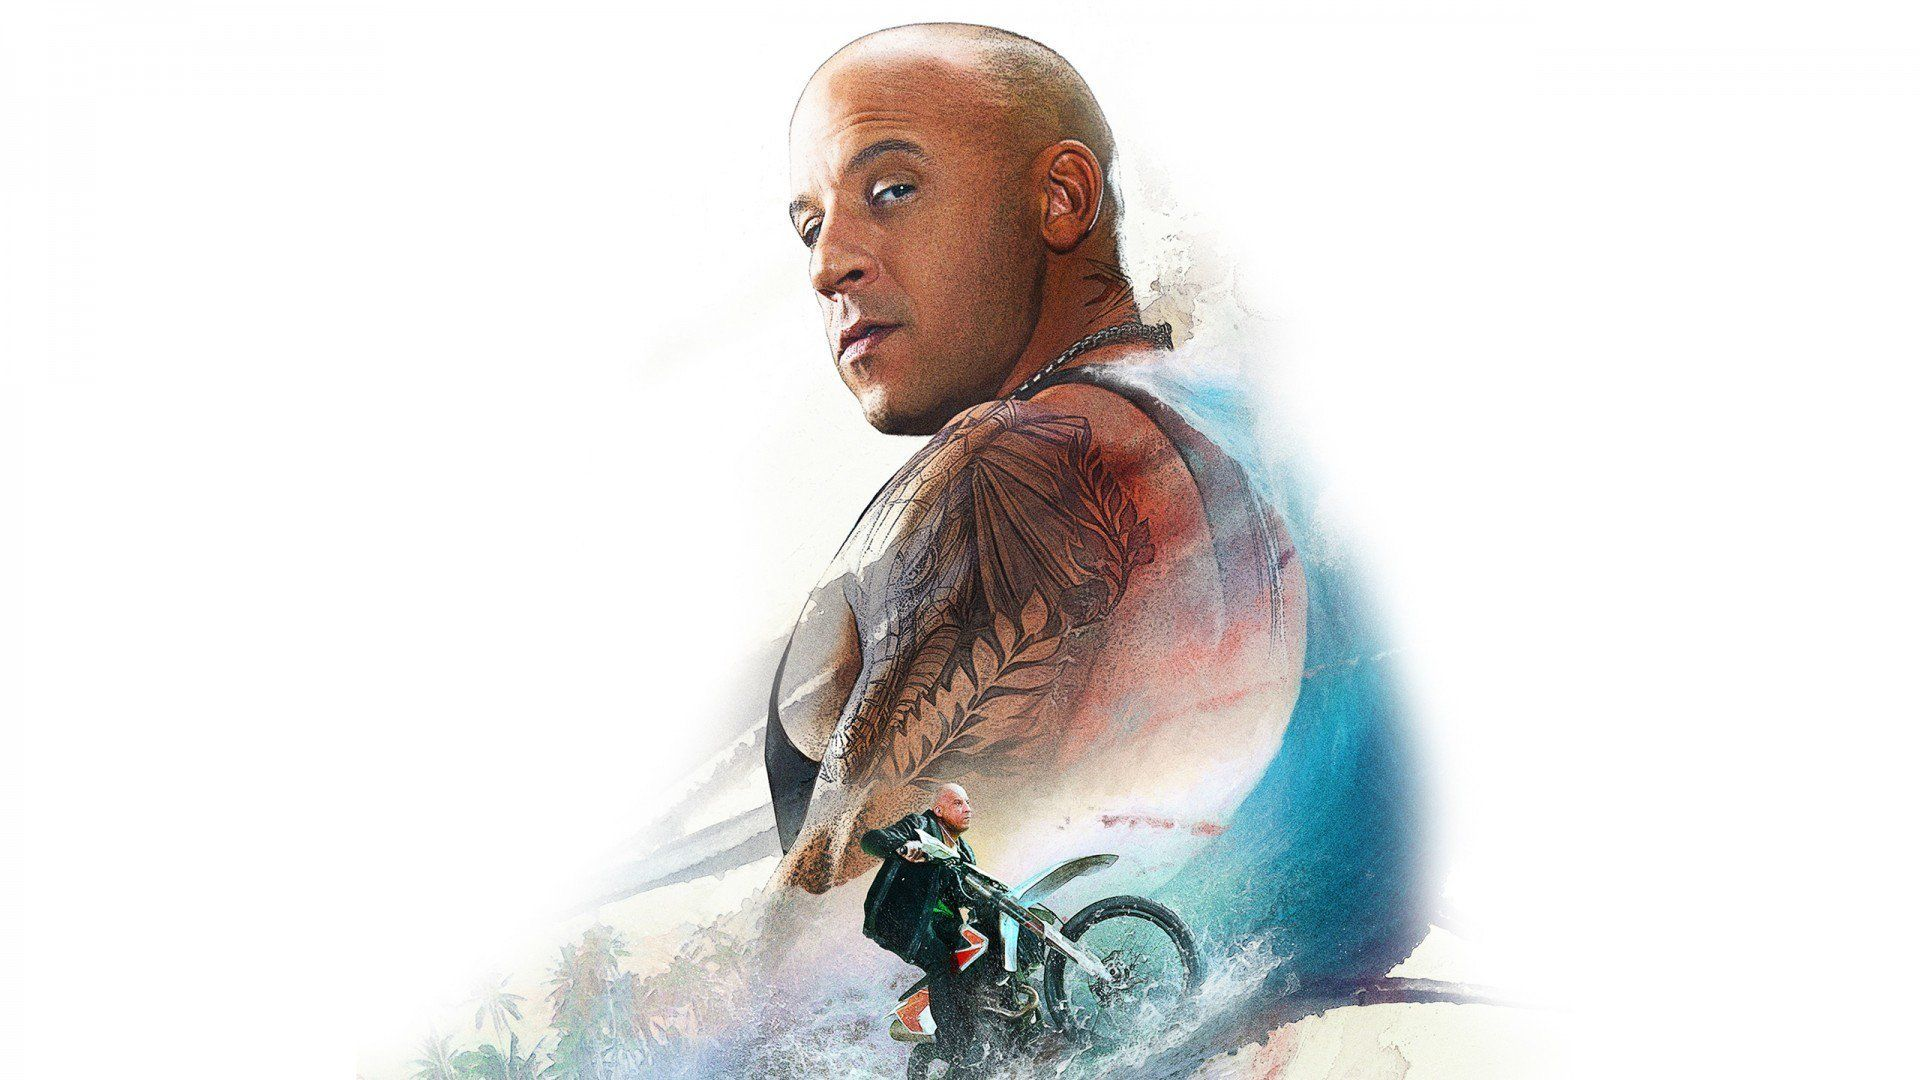 xXx: Return of Xander Cage Full Movie Watch xXx: Return of Xander Cage 2017 Full Movie Online xXx: Return of Xander Cage 2017 Full Movie Streaming Online in HD-720p Video Quality xXx: Return of Xander Cage 2017 Full Movie Where to Download xXx: Return of Xander Cage 2017 Full Movie ? Watch xXx: Return of Xander Cage Full Movie Watch xXx: Return of Xander Cage Full Movie Online Watch xXx: Return of Xander Cage Full Movie HD 1080p xXx: Return of Xander Cage 2017 Full Movie